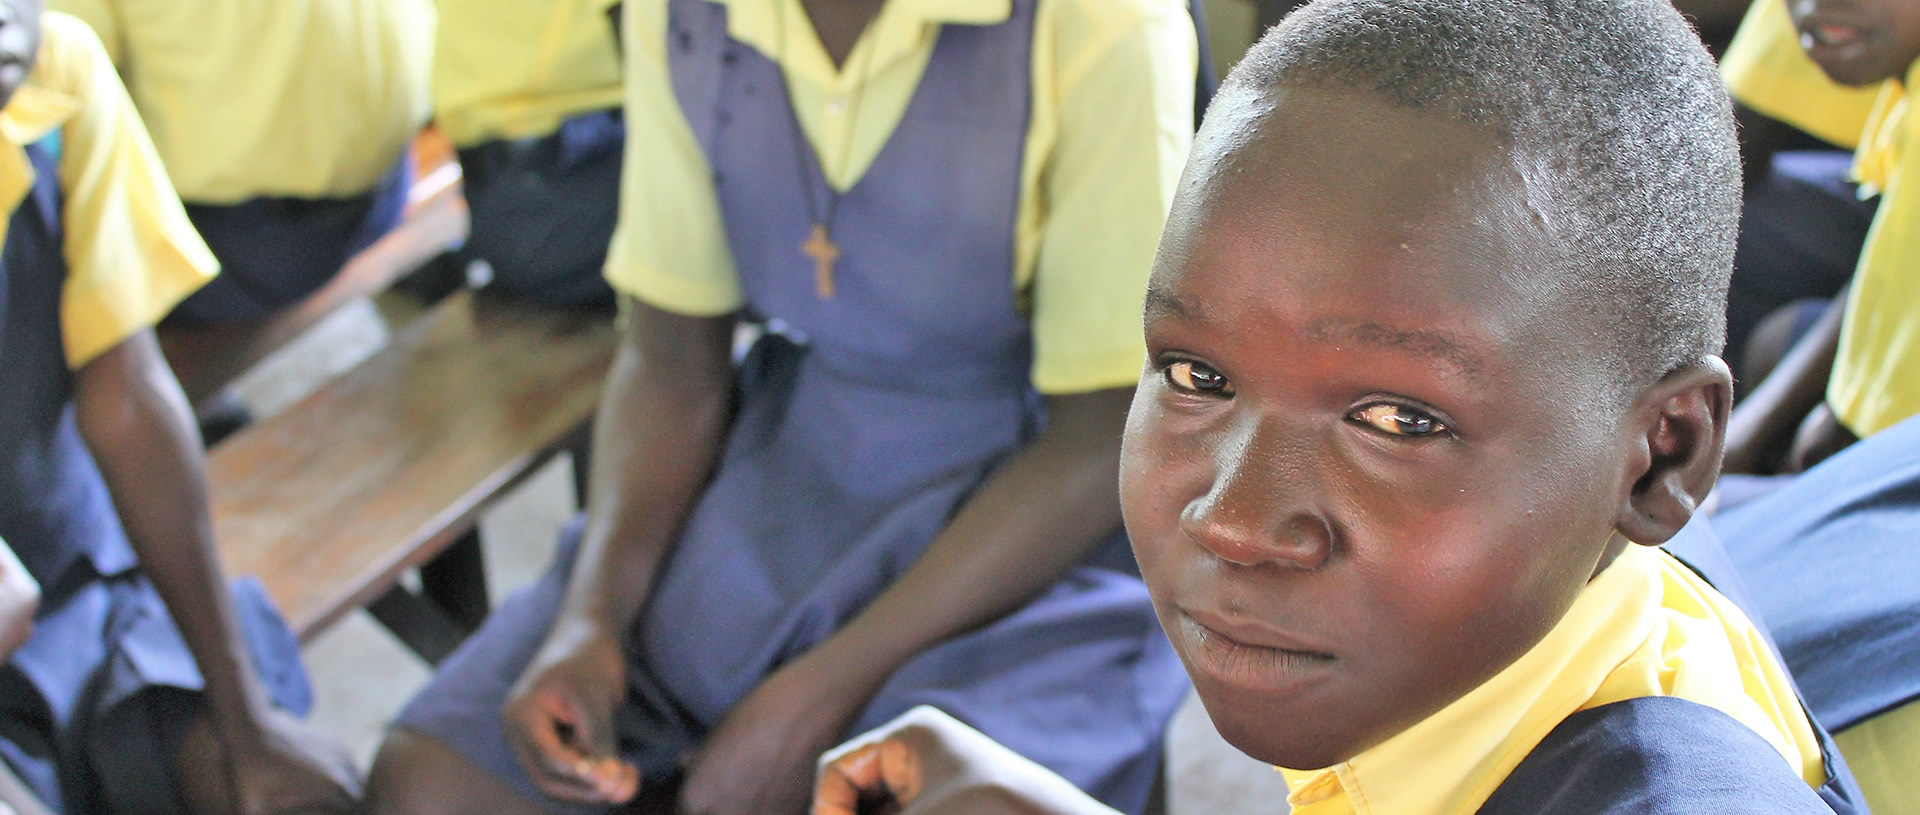 Students in S. Sudan find hope through education banner